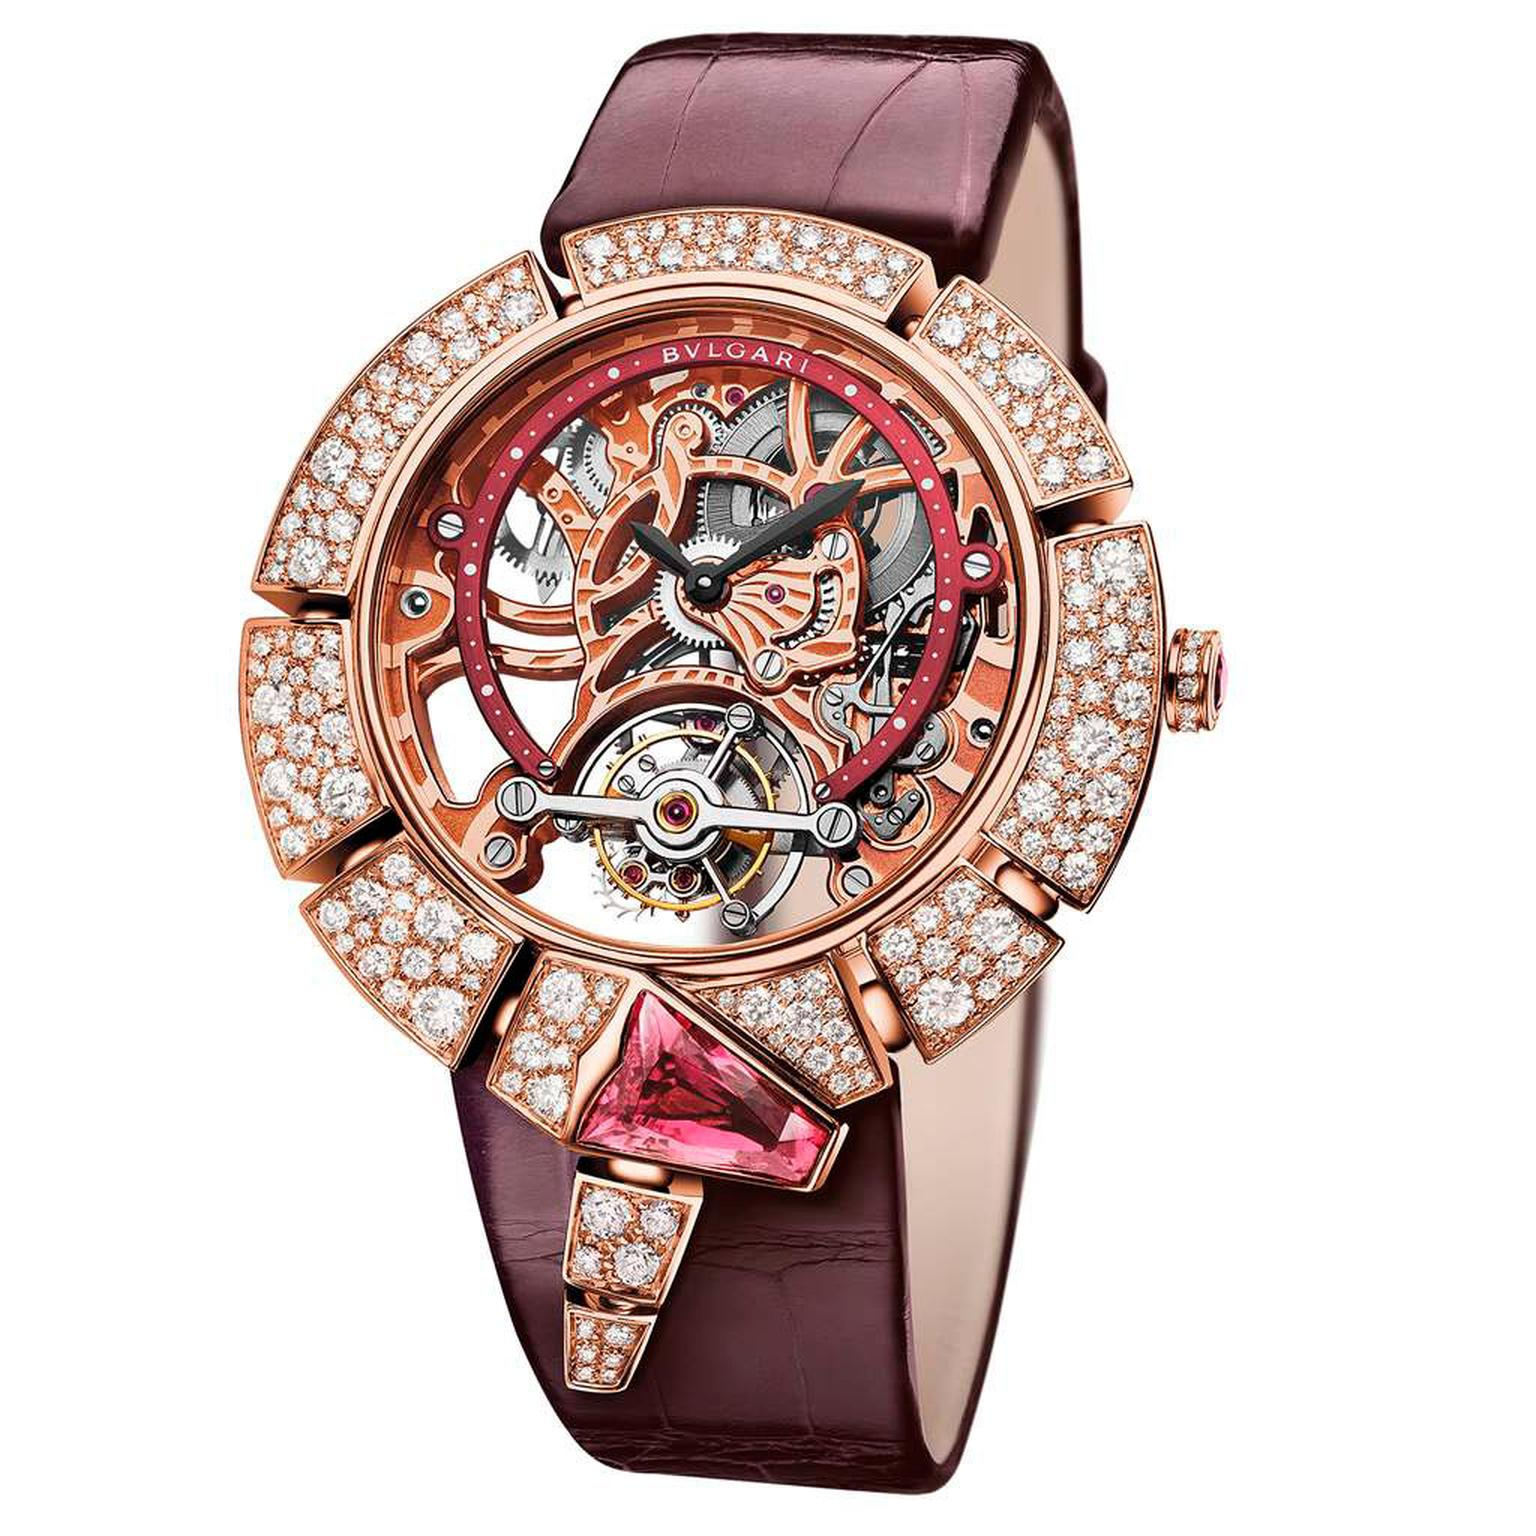 GPHG 2016 Bulgari Serpenti Incantati Tourbillon Lumière watch